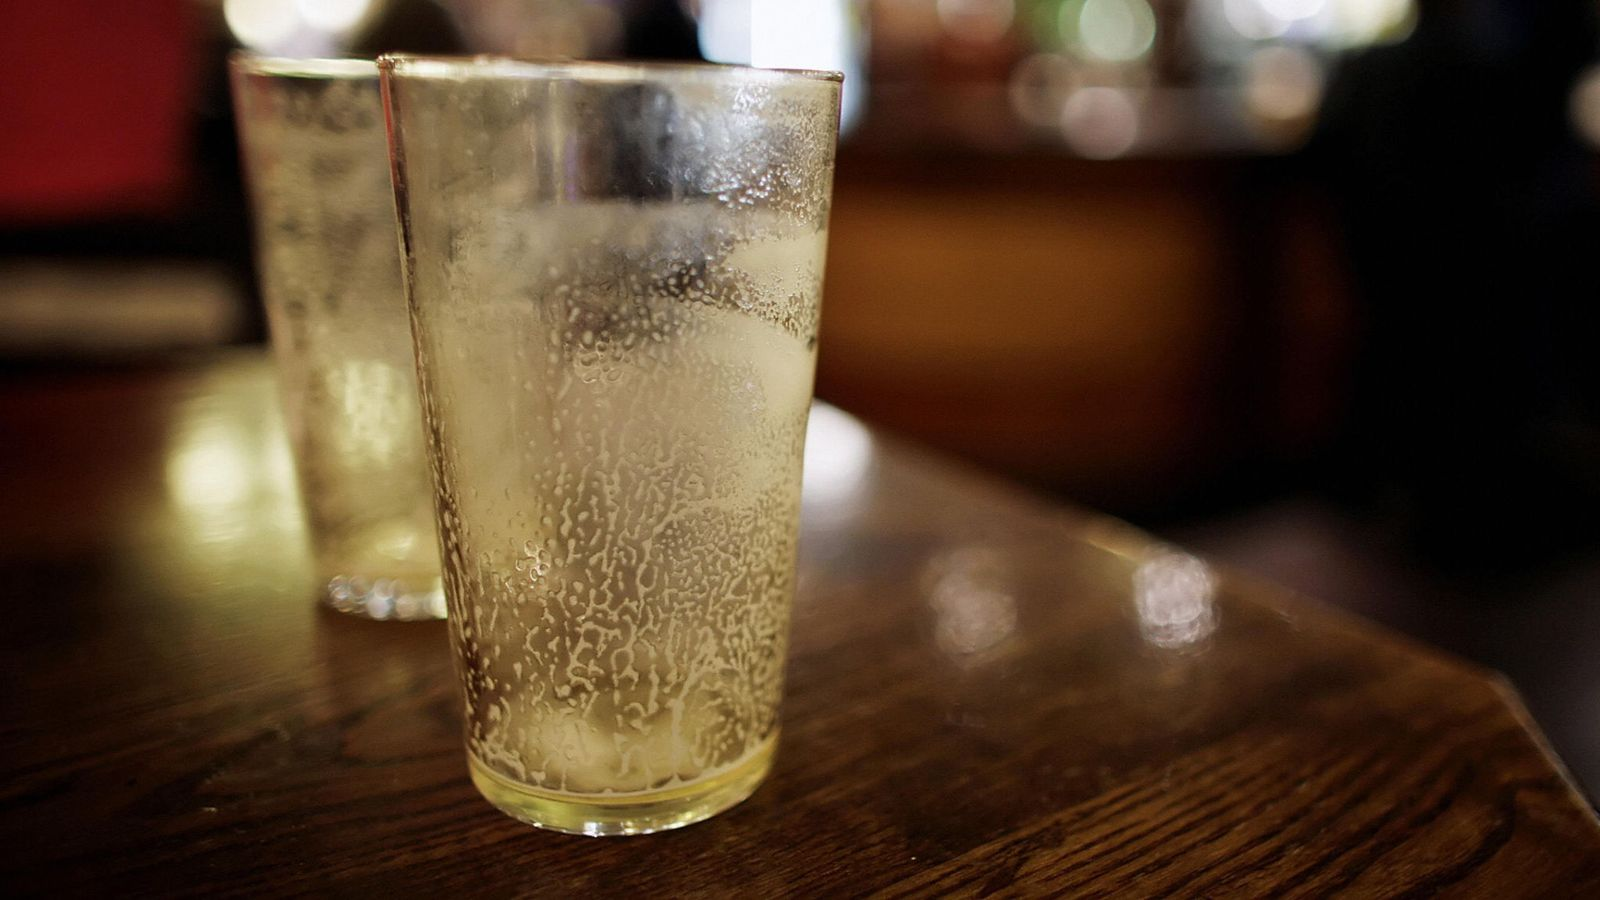 Some Wetherspoons Run Out Of Draught John Smith's And Strongbow Cider Amid Co2 Crisis photo